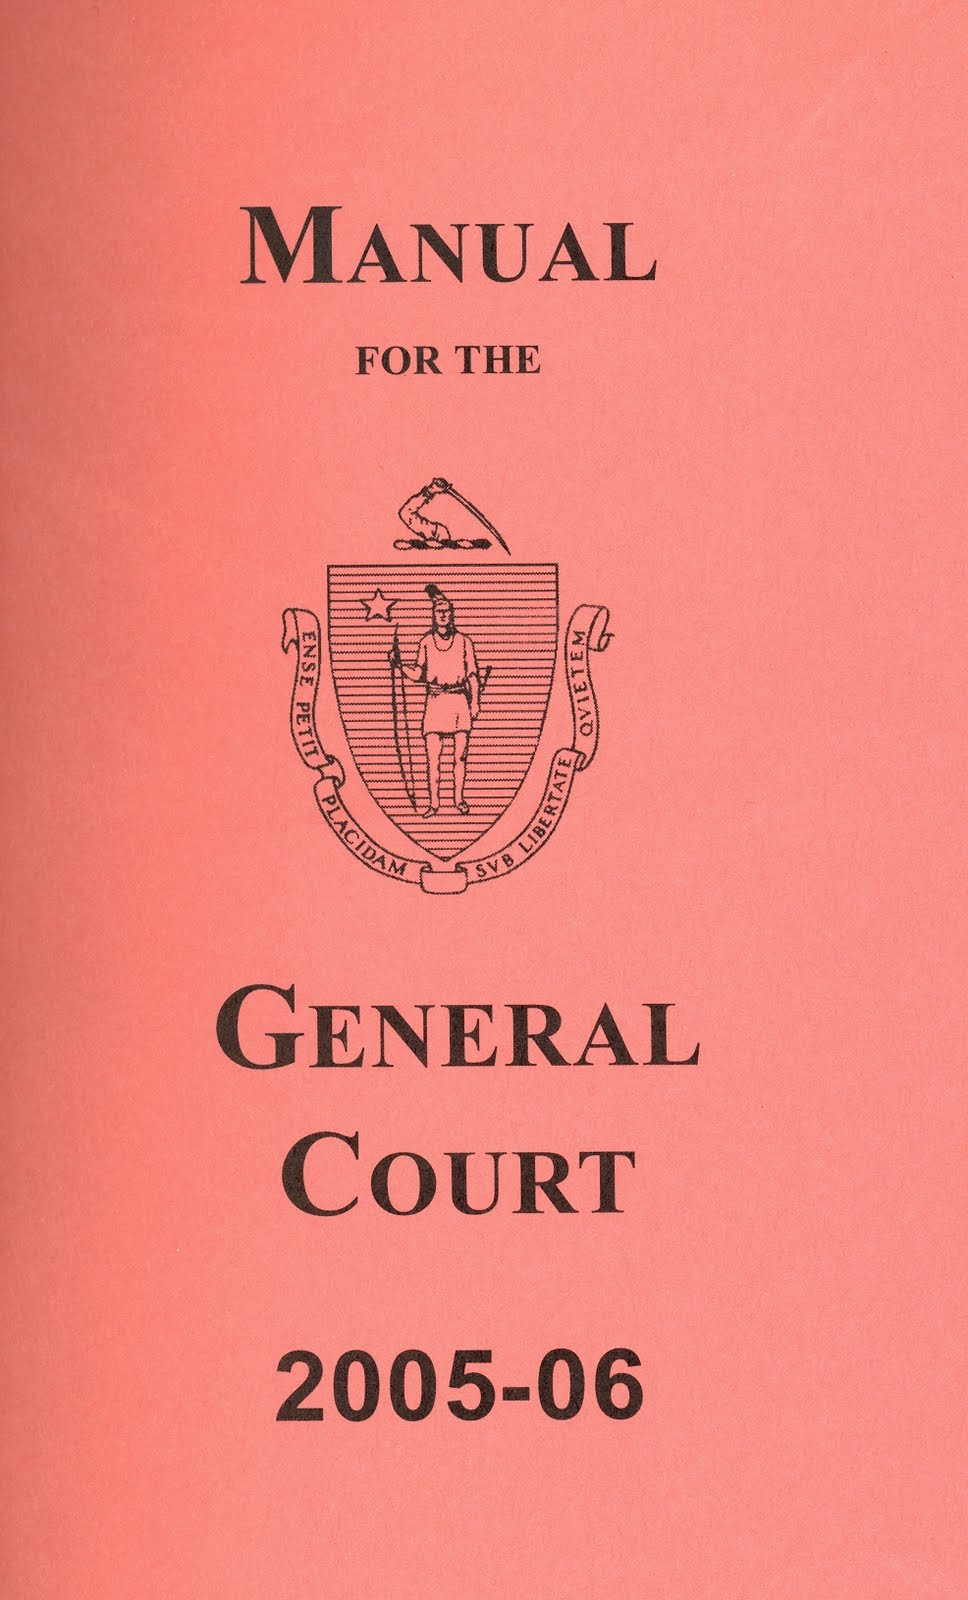 All About Court Manual Guide